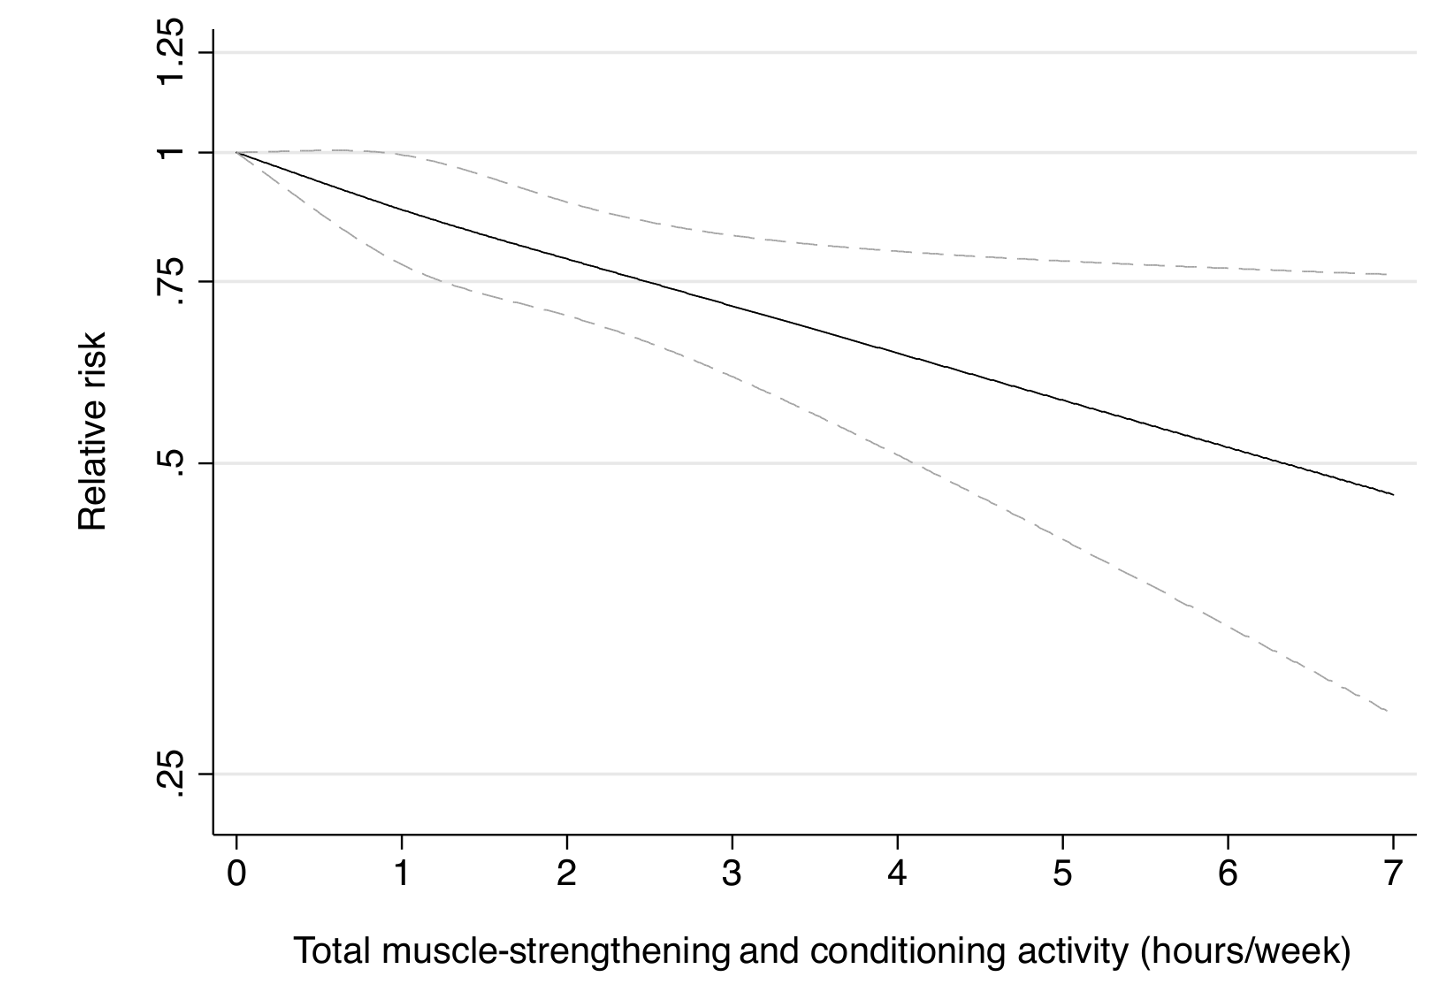 Dose-response relationship between total muscle-strengthening activity (hours/week) and risk of type 2 diabetes in women from the Nurses' Health Study.